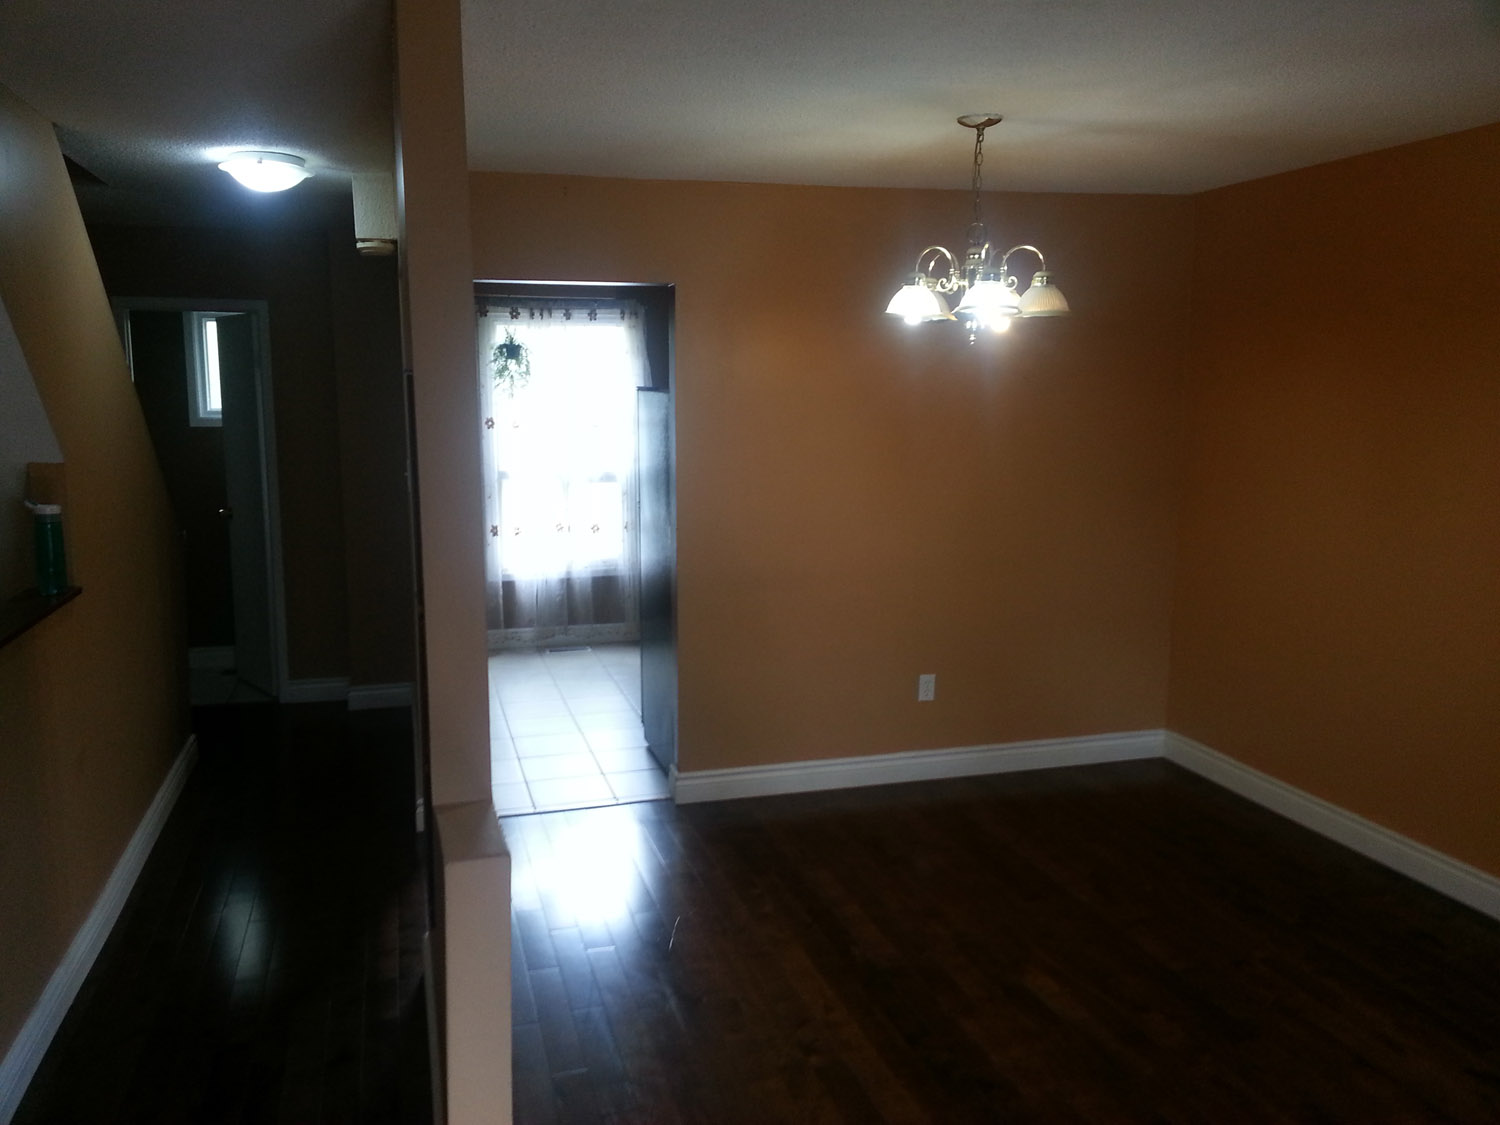 Attractive 3 Bed 1 5 Bath Townhome For Rent In Heart Of Brampton - 09 01 13 22 00 1 1